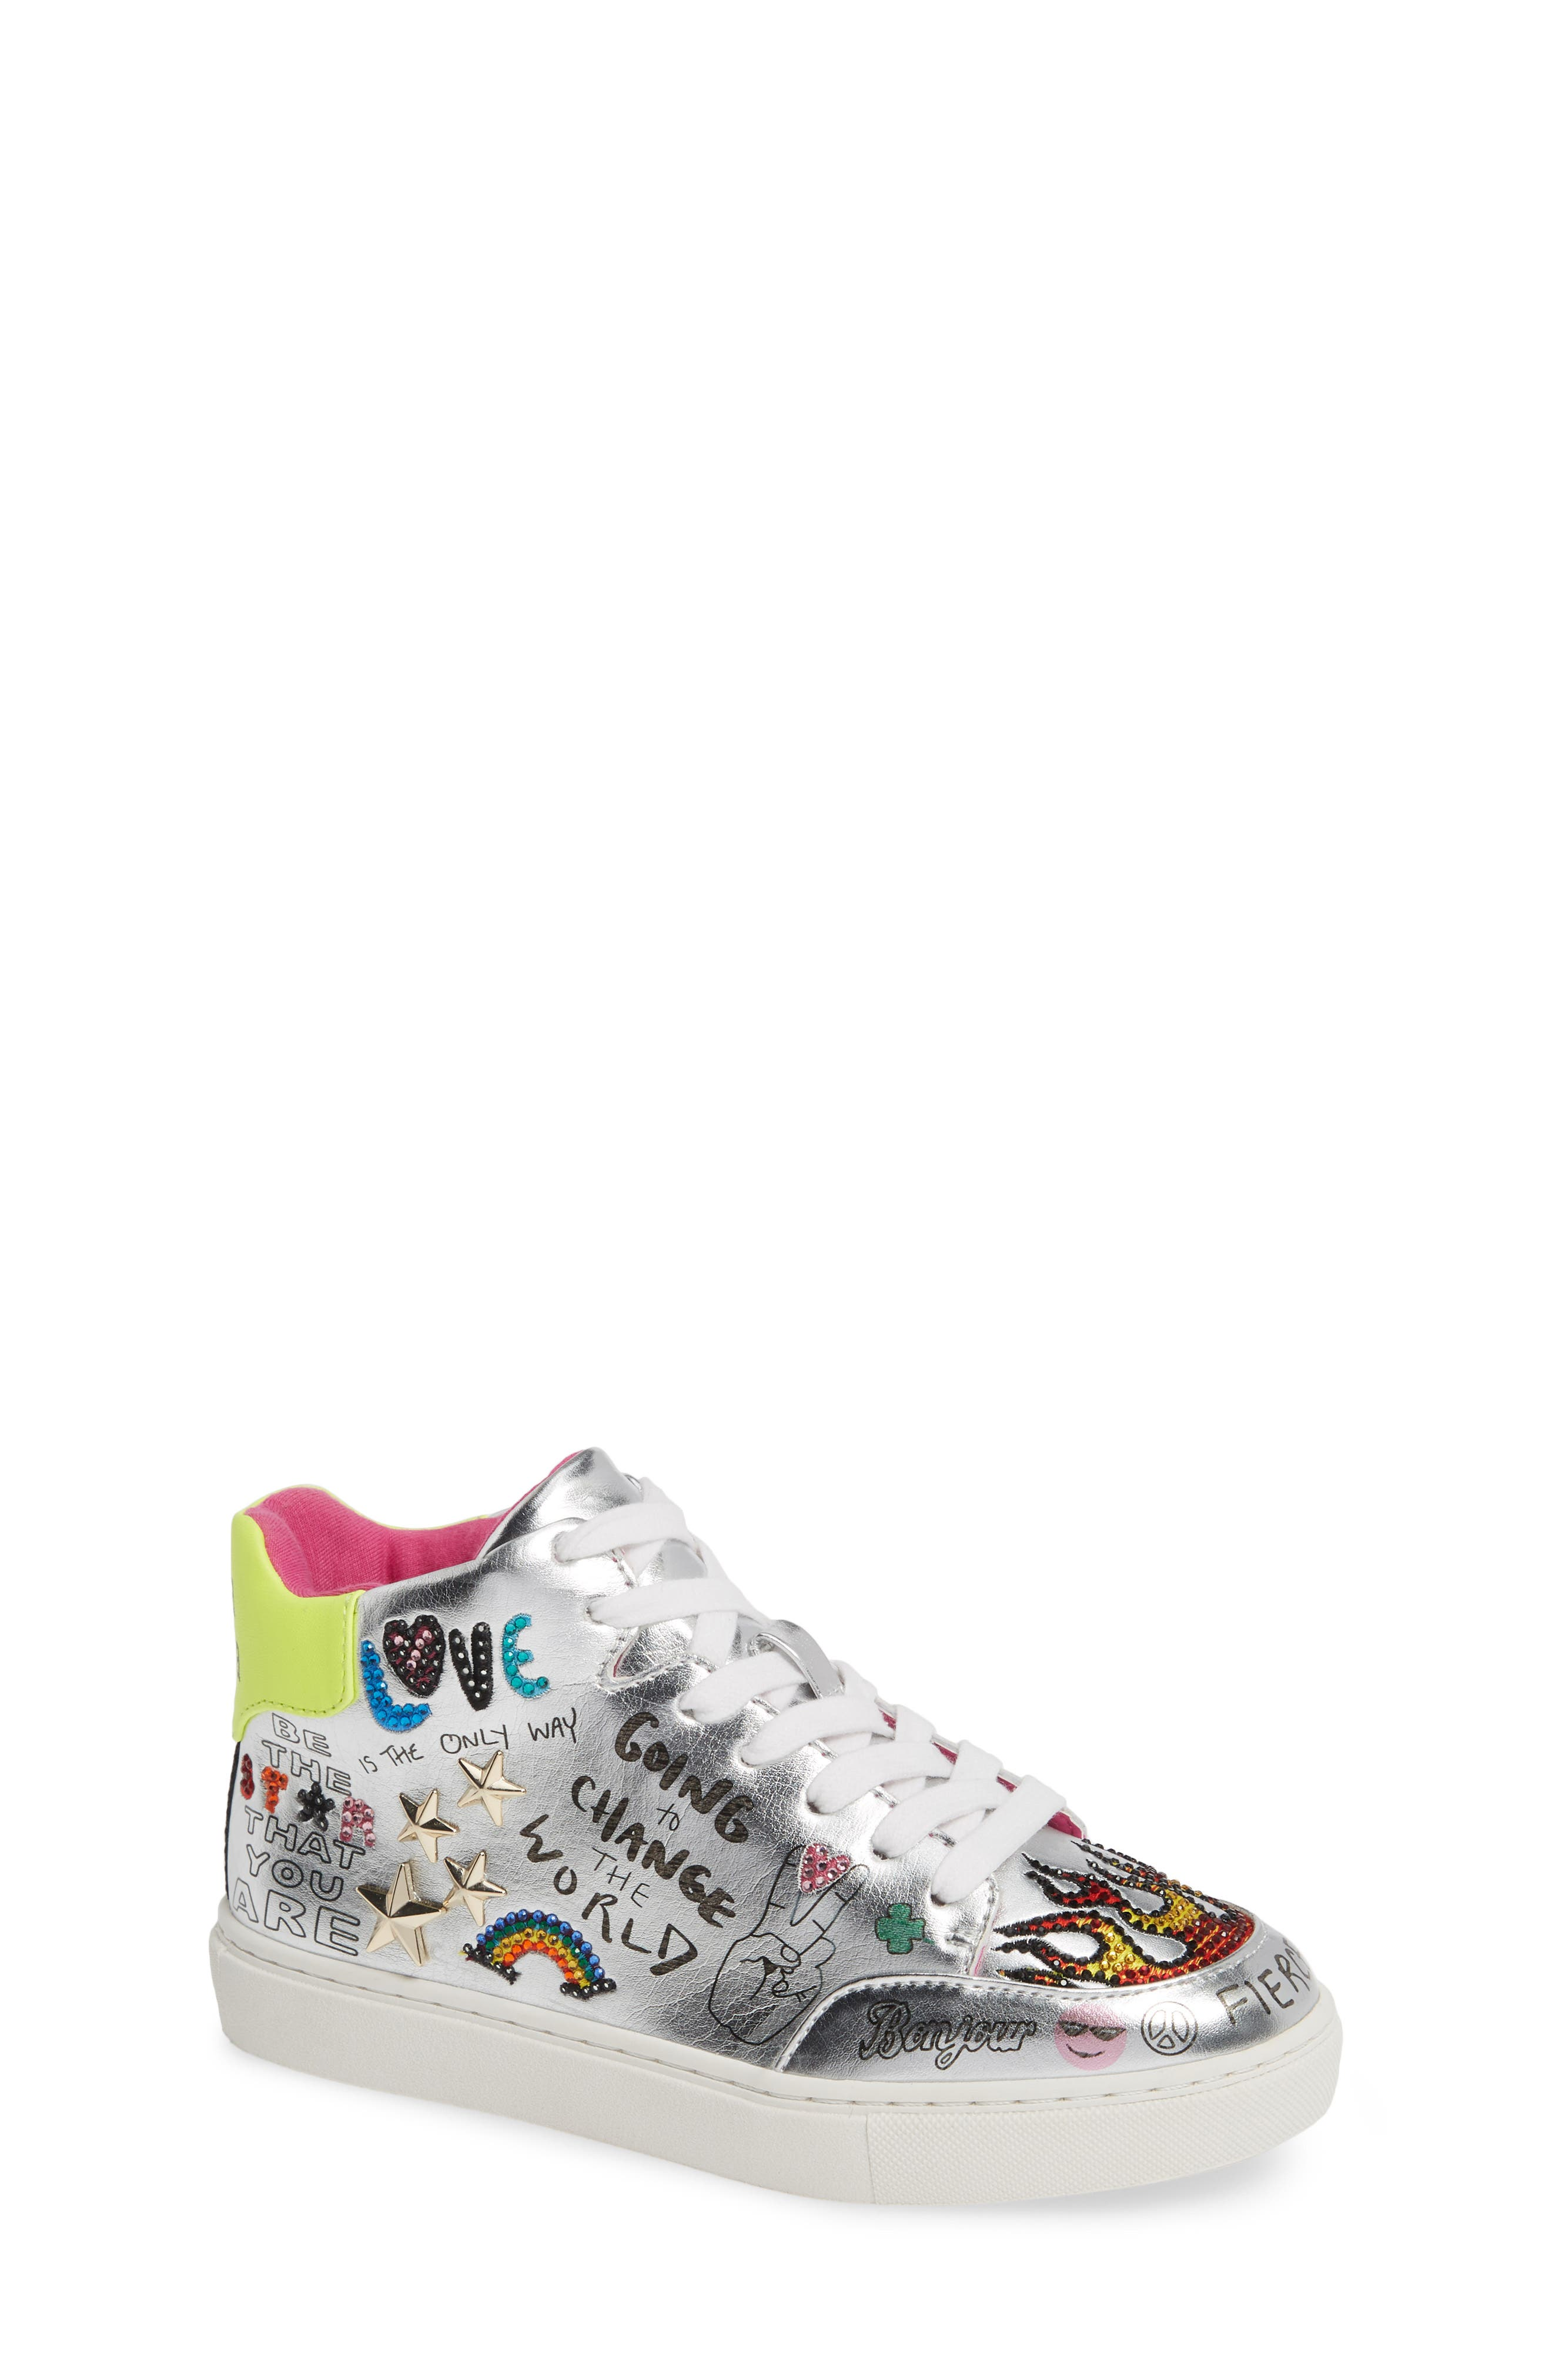 STEVE MADDEN JPOWER High Top Sneaker, Main, color, SILVER MULTI